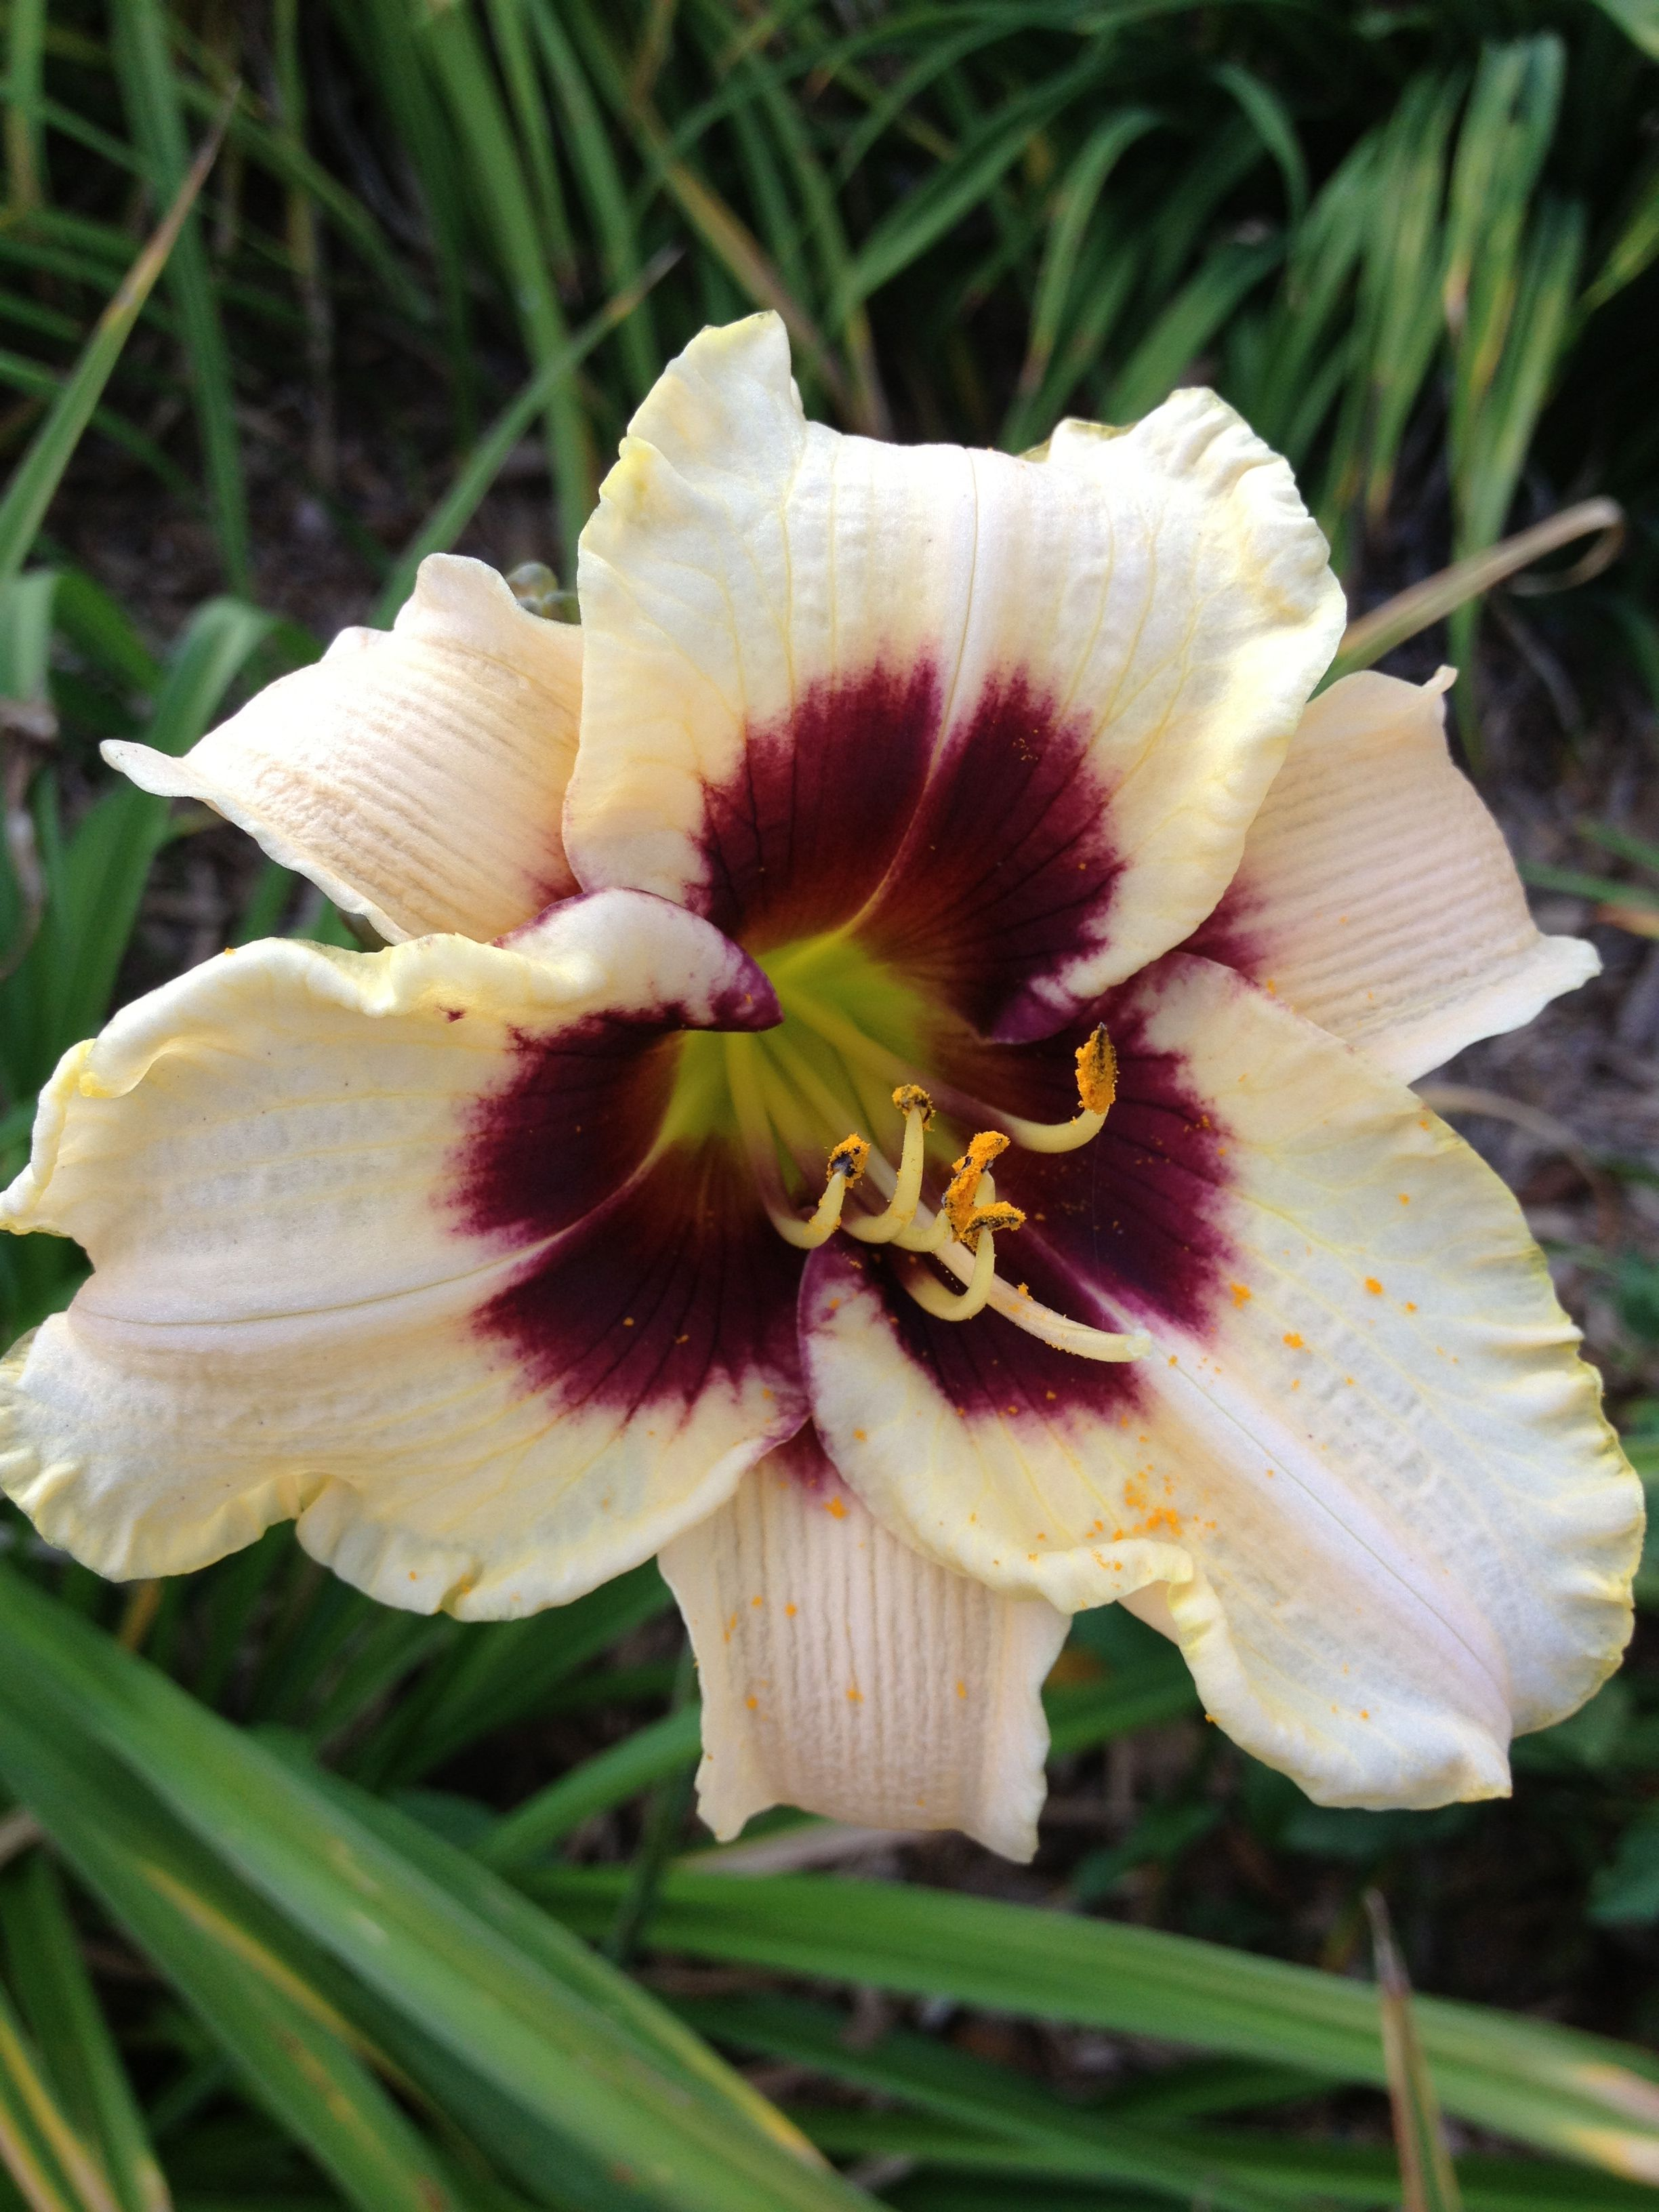 Moonlight masquerade daylily daylilies i have pinterest moonlight masquerade daylily izmirmasajfo